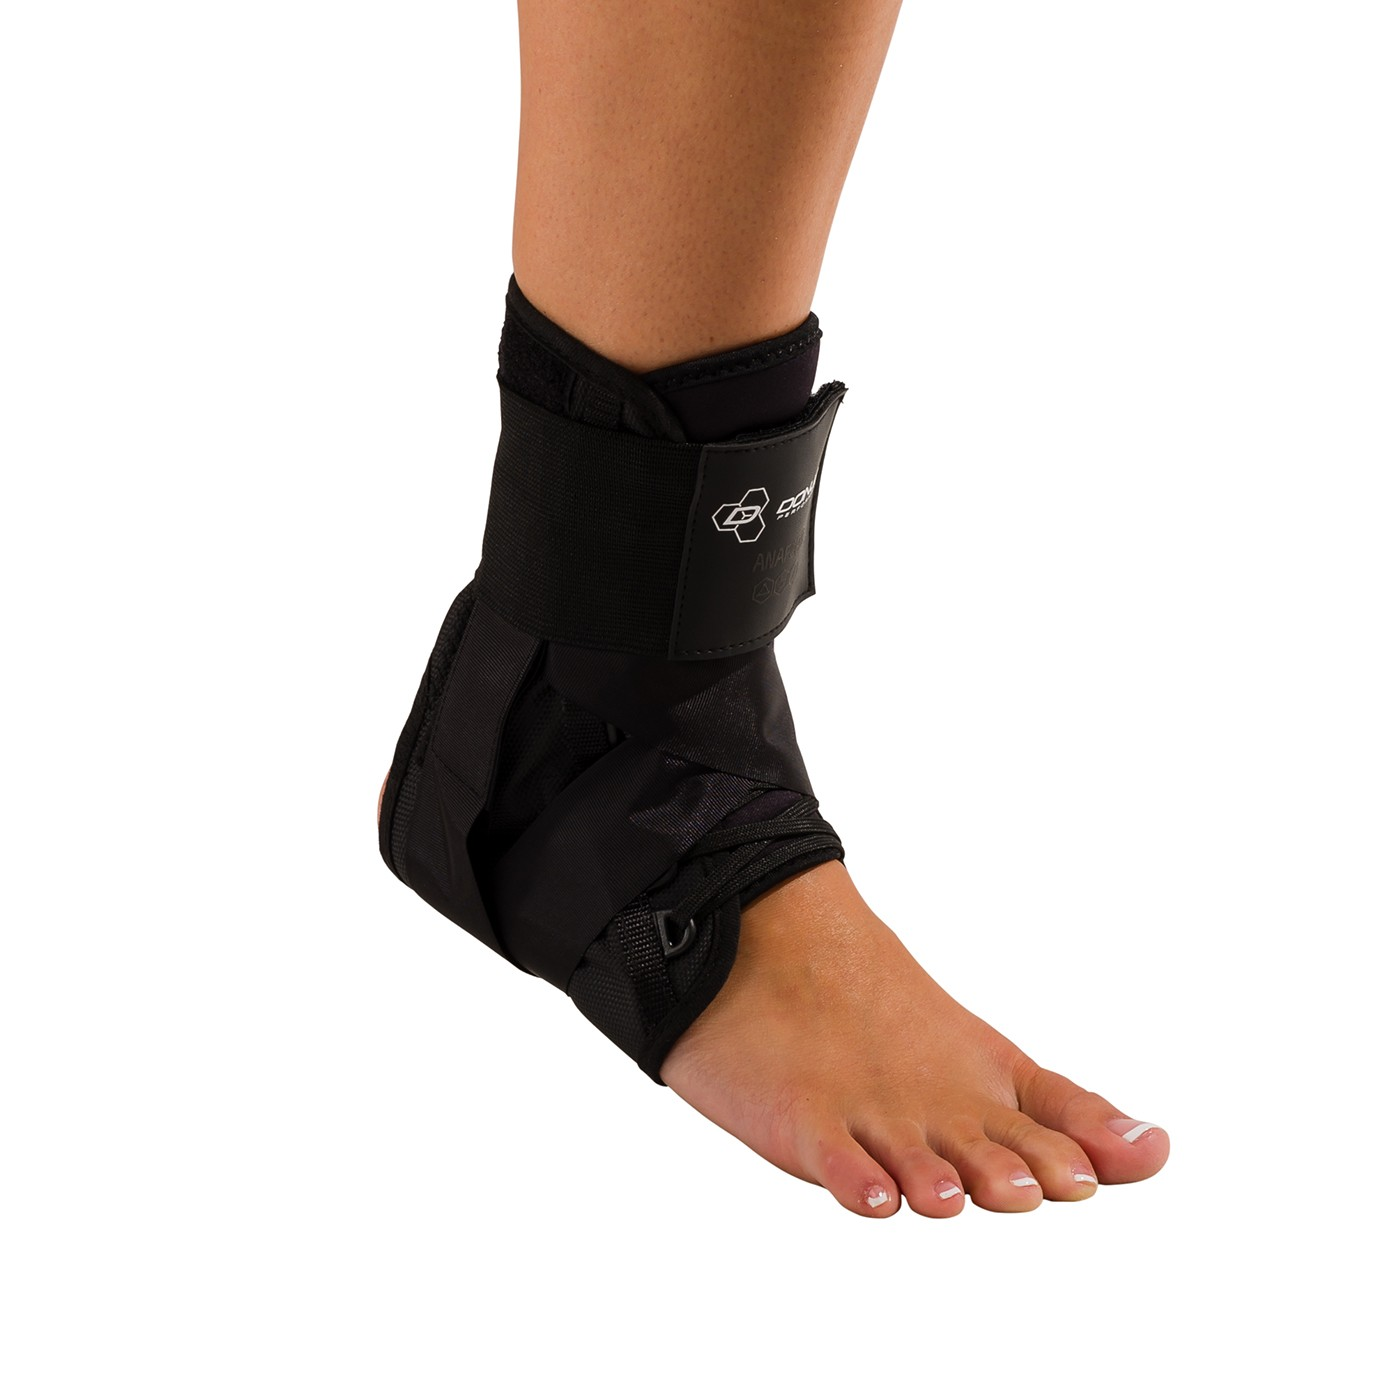 procare lace up ankle brace instructions